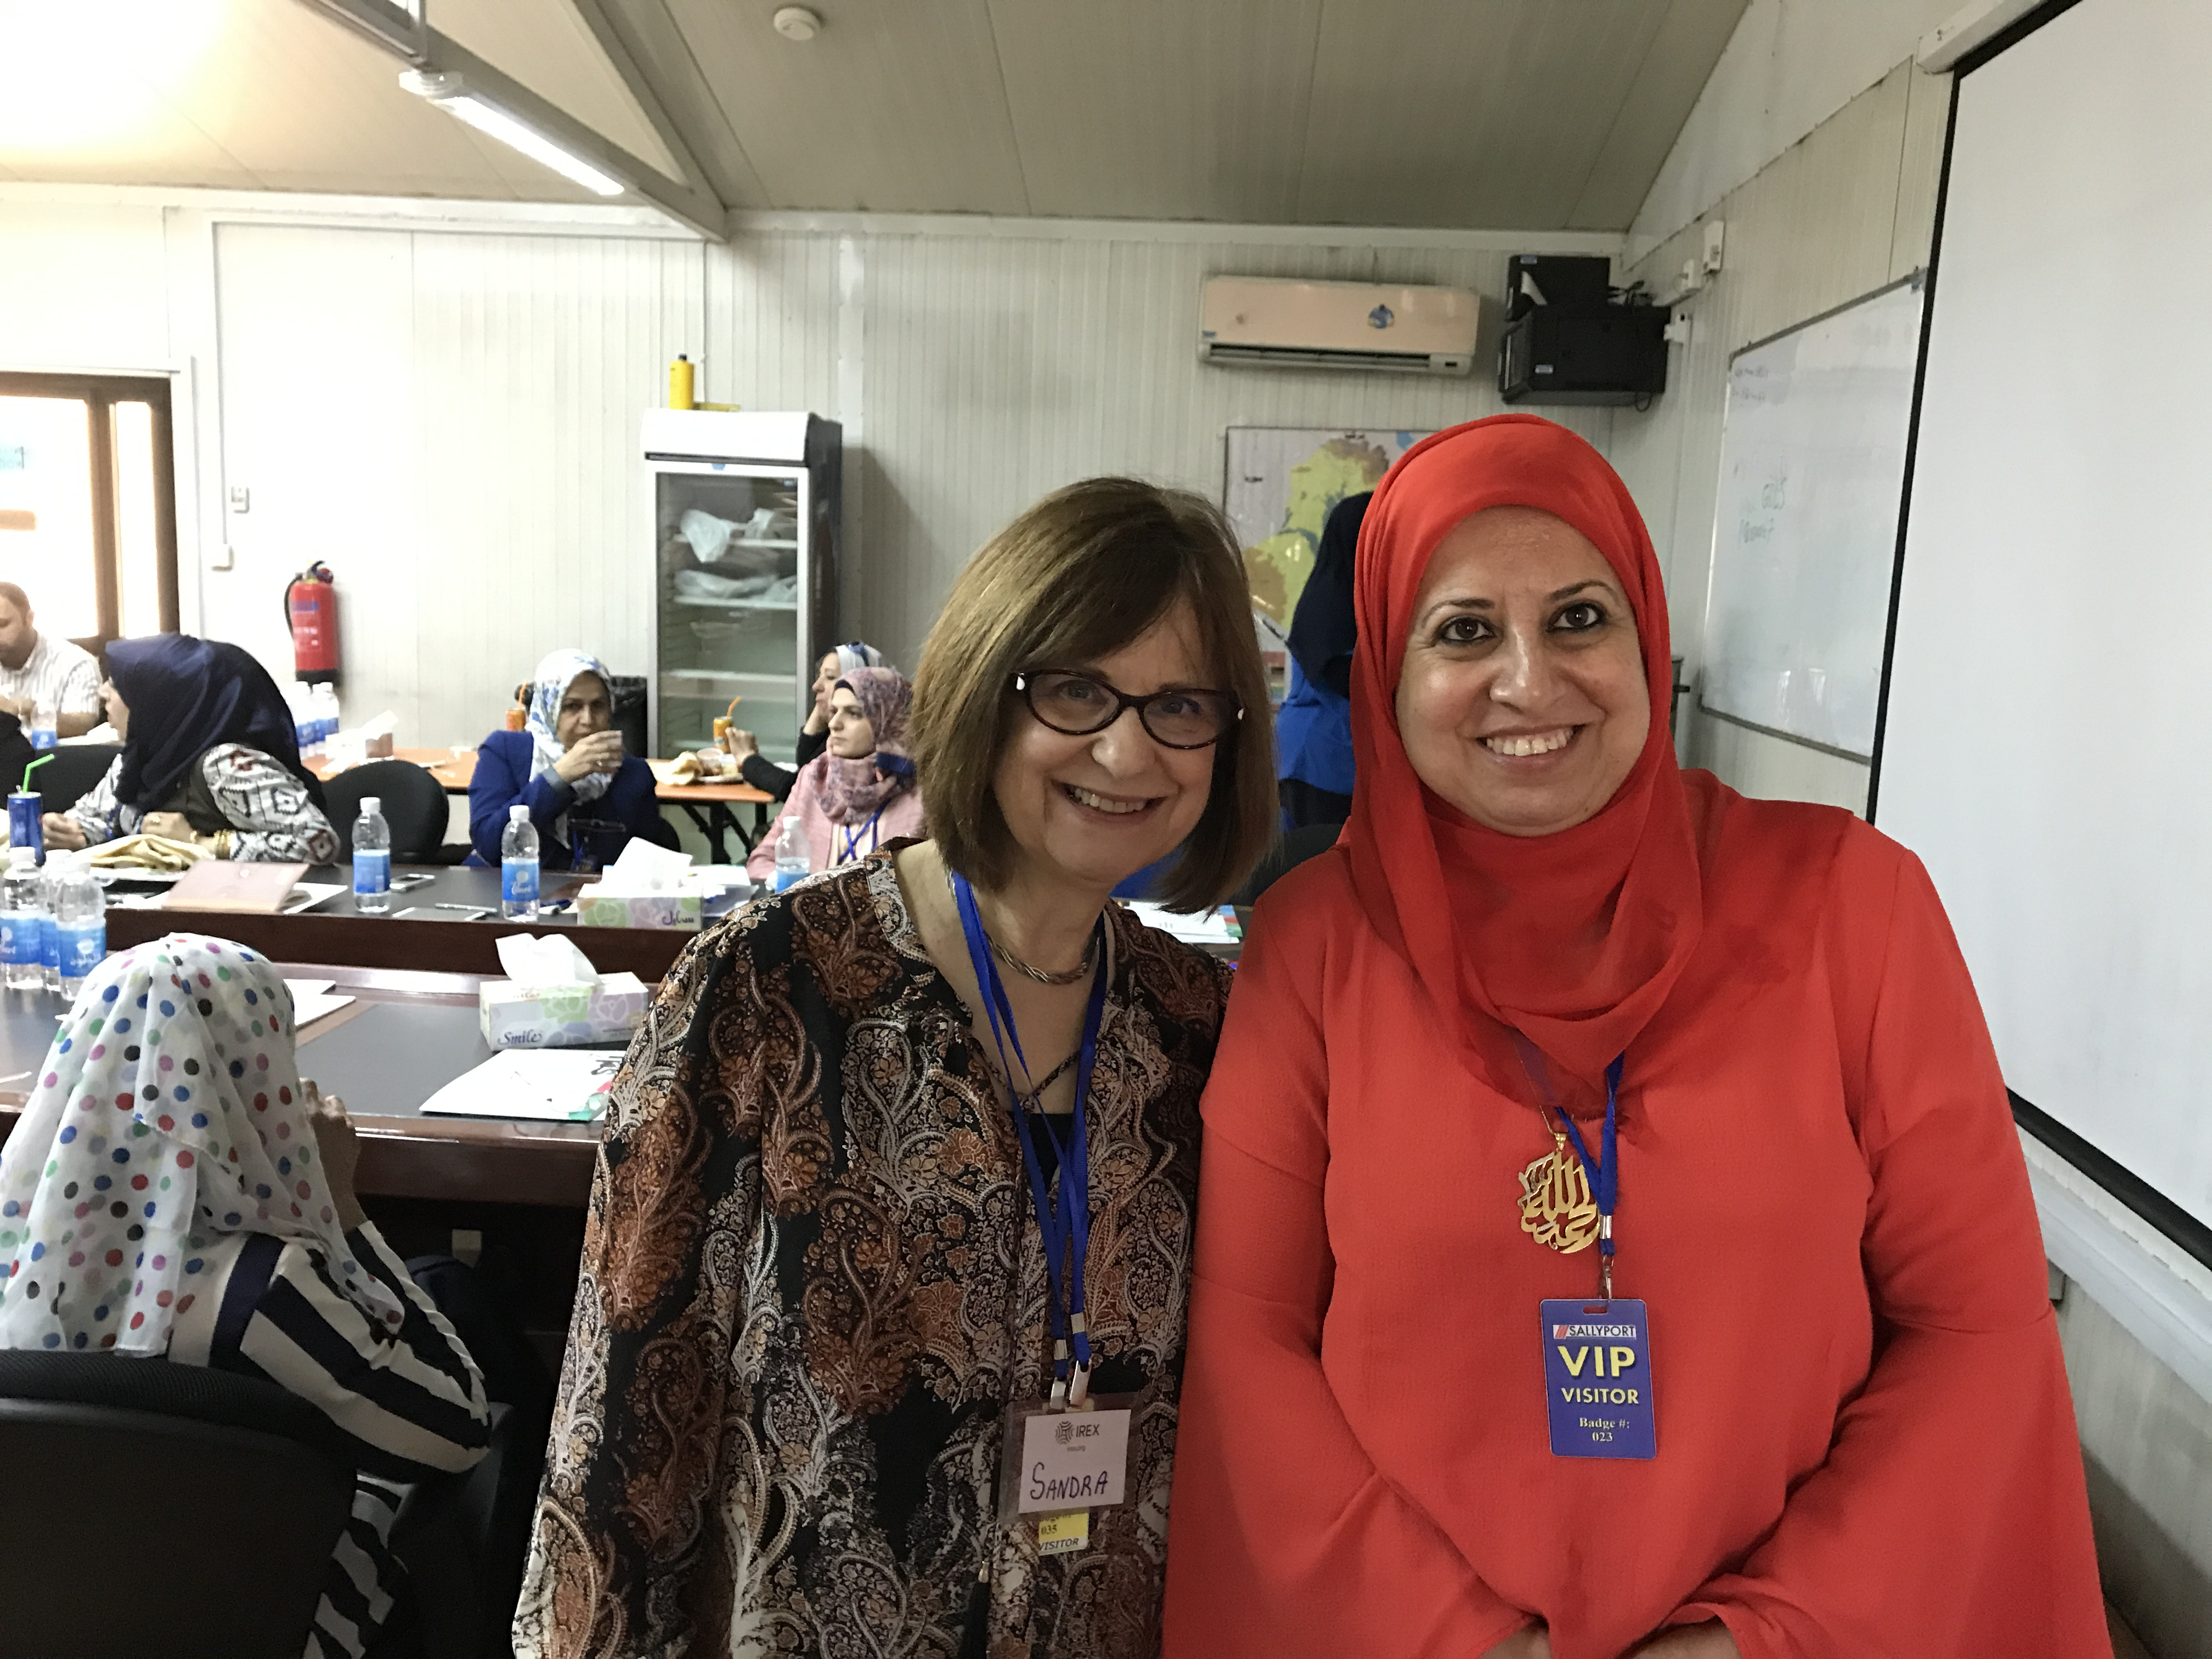 Leader of Vanguard center goes to Baghdad to help make women university leaders in Iraq